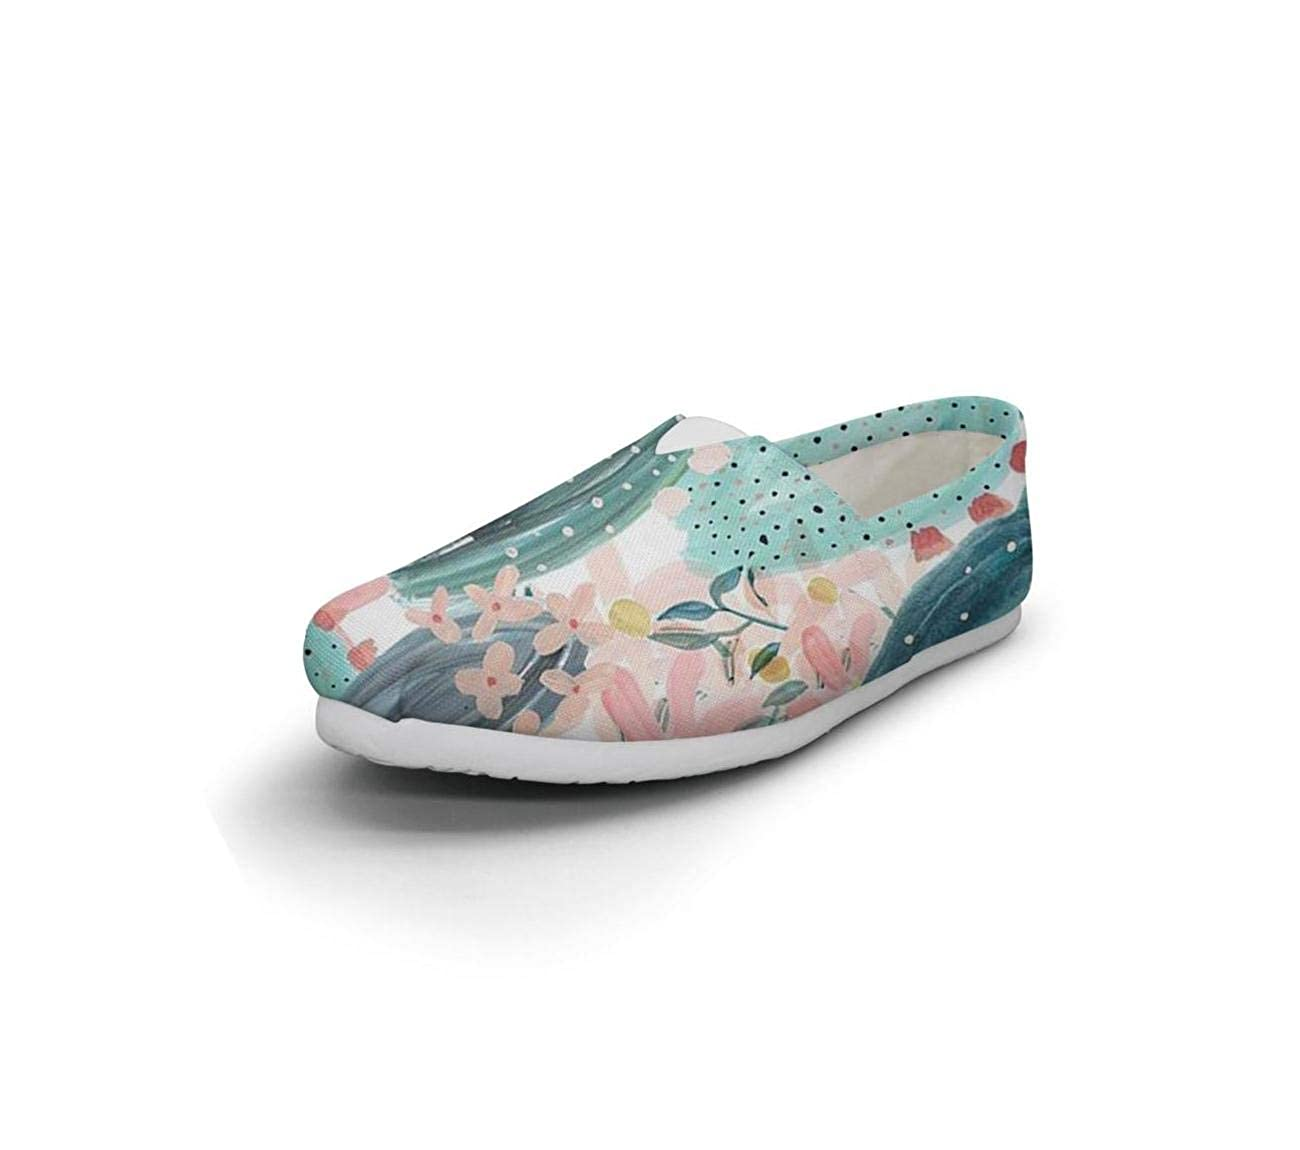 nkfbx Painted Cactus Pattern Classic Flat Canva Shoes for Girls Travel